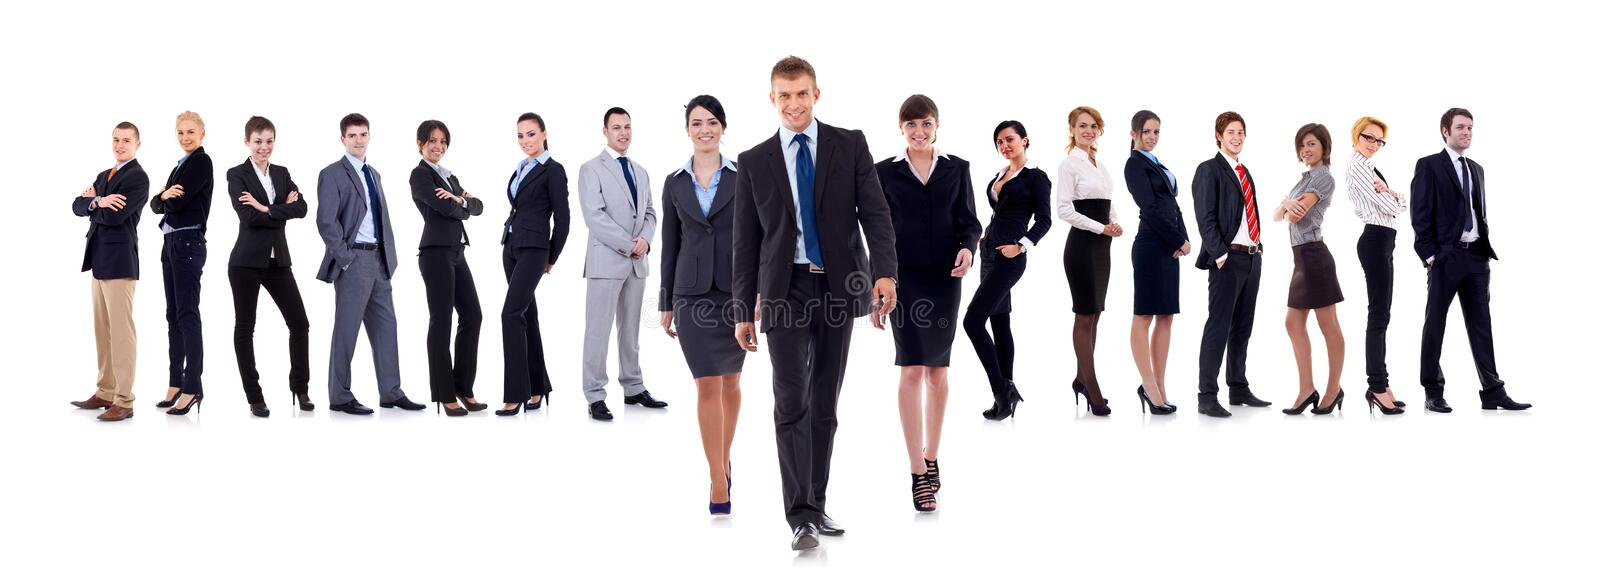 Business leaders walking royalty free stock images